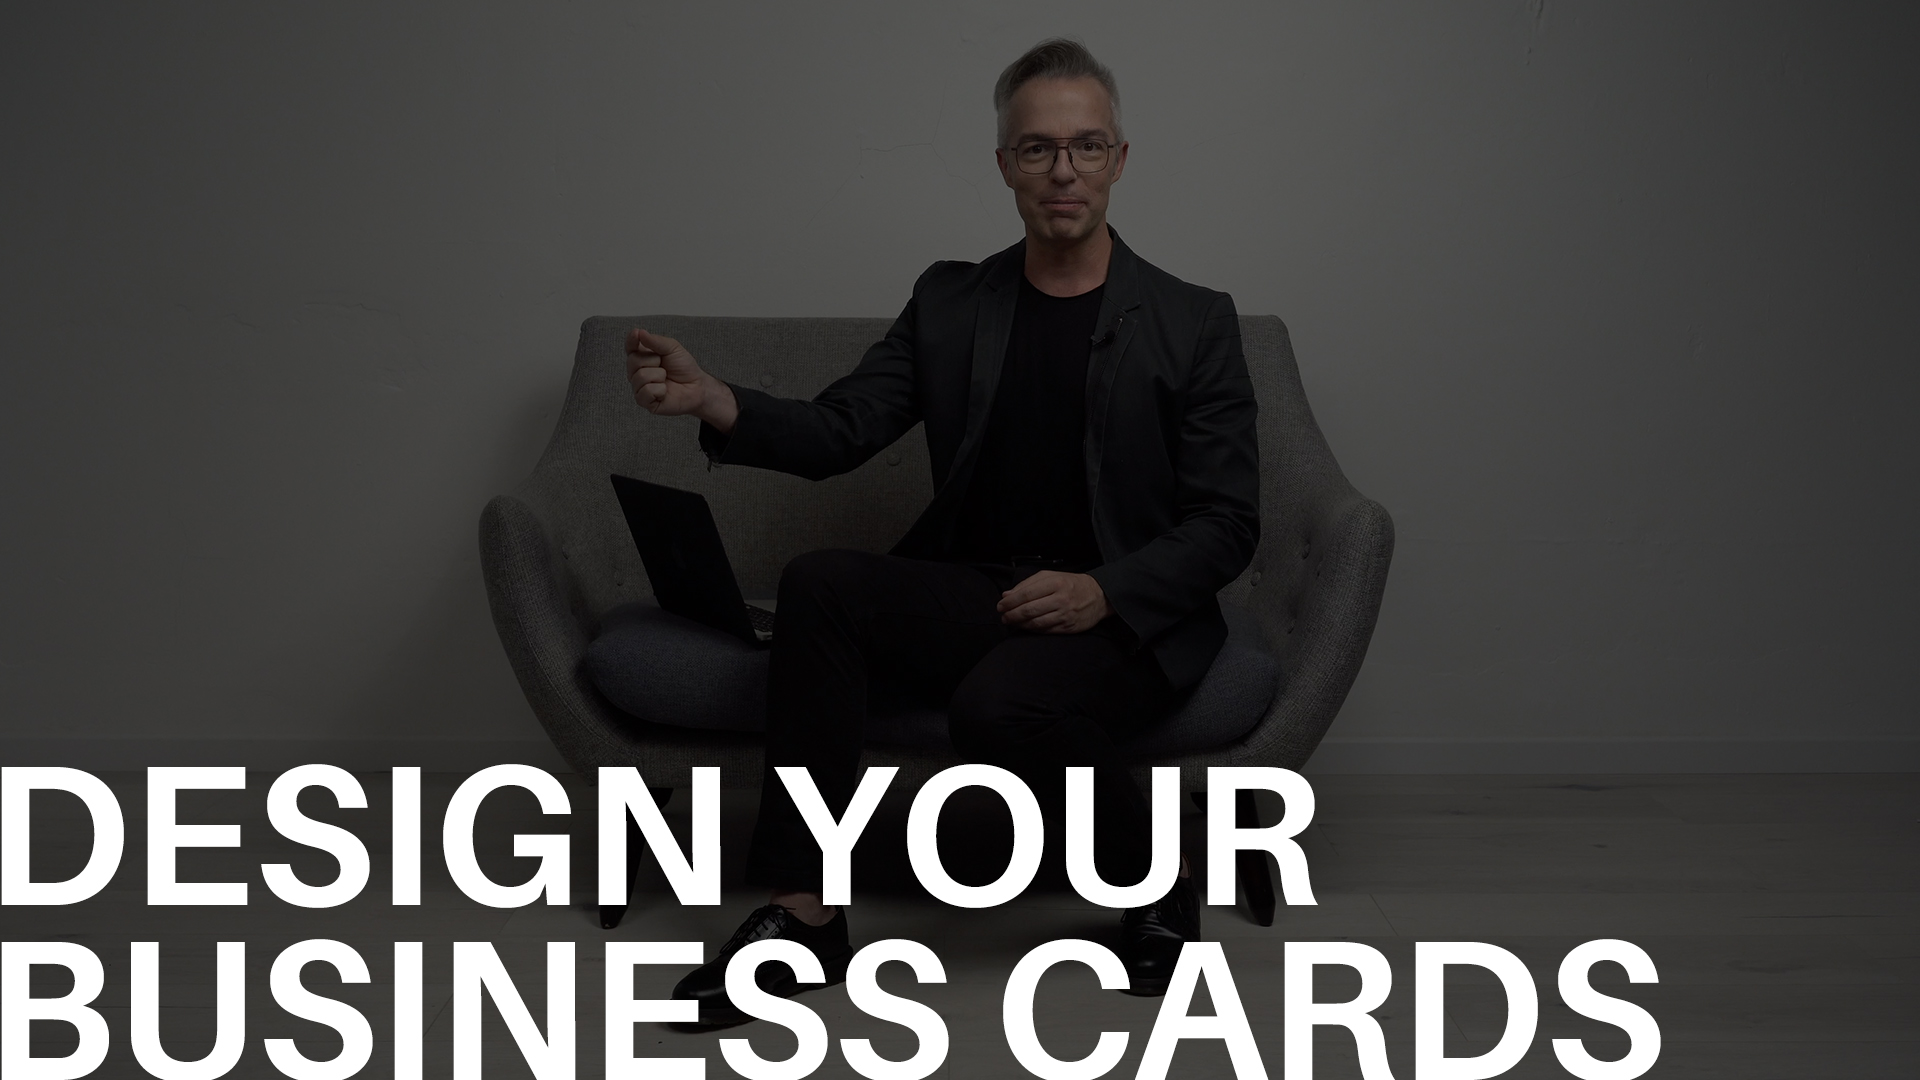 Design Your Business Cards.jpg